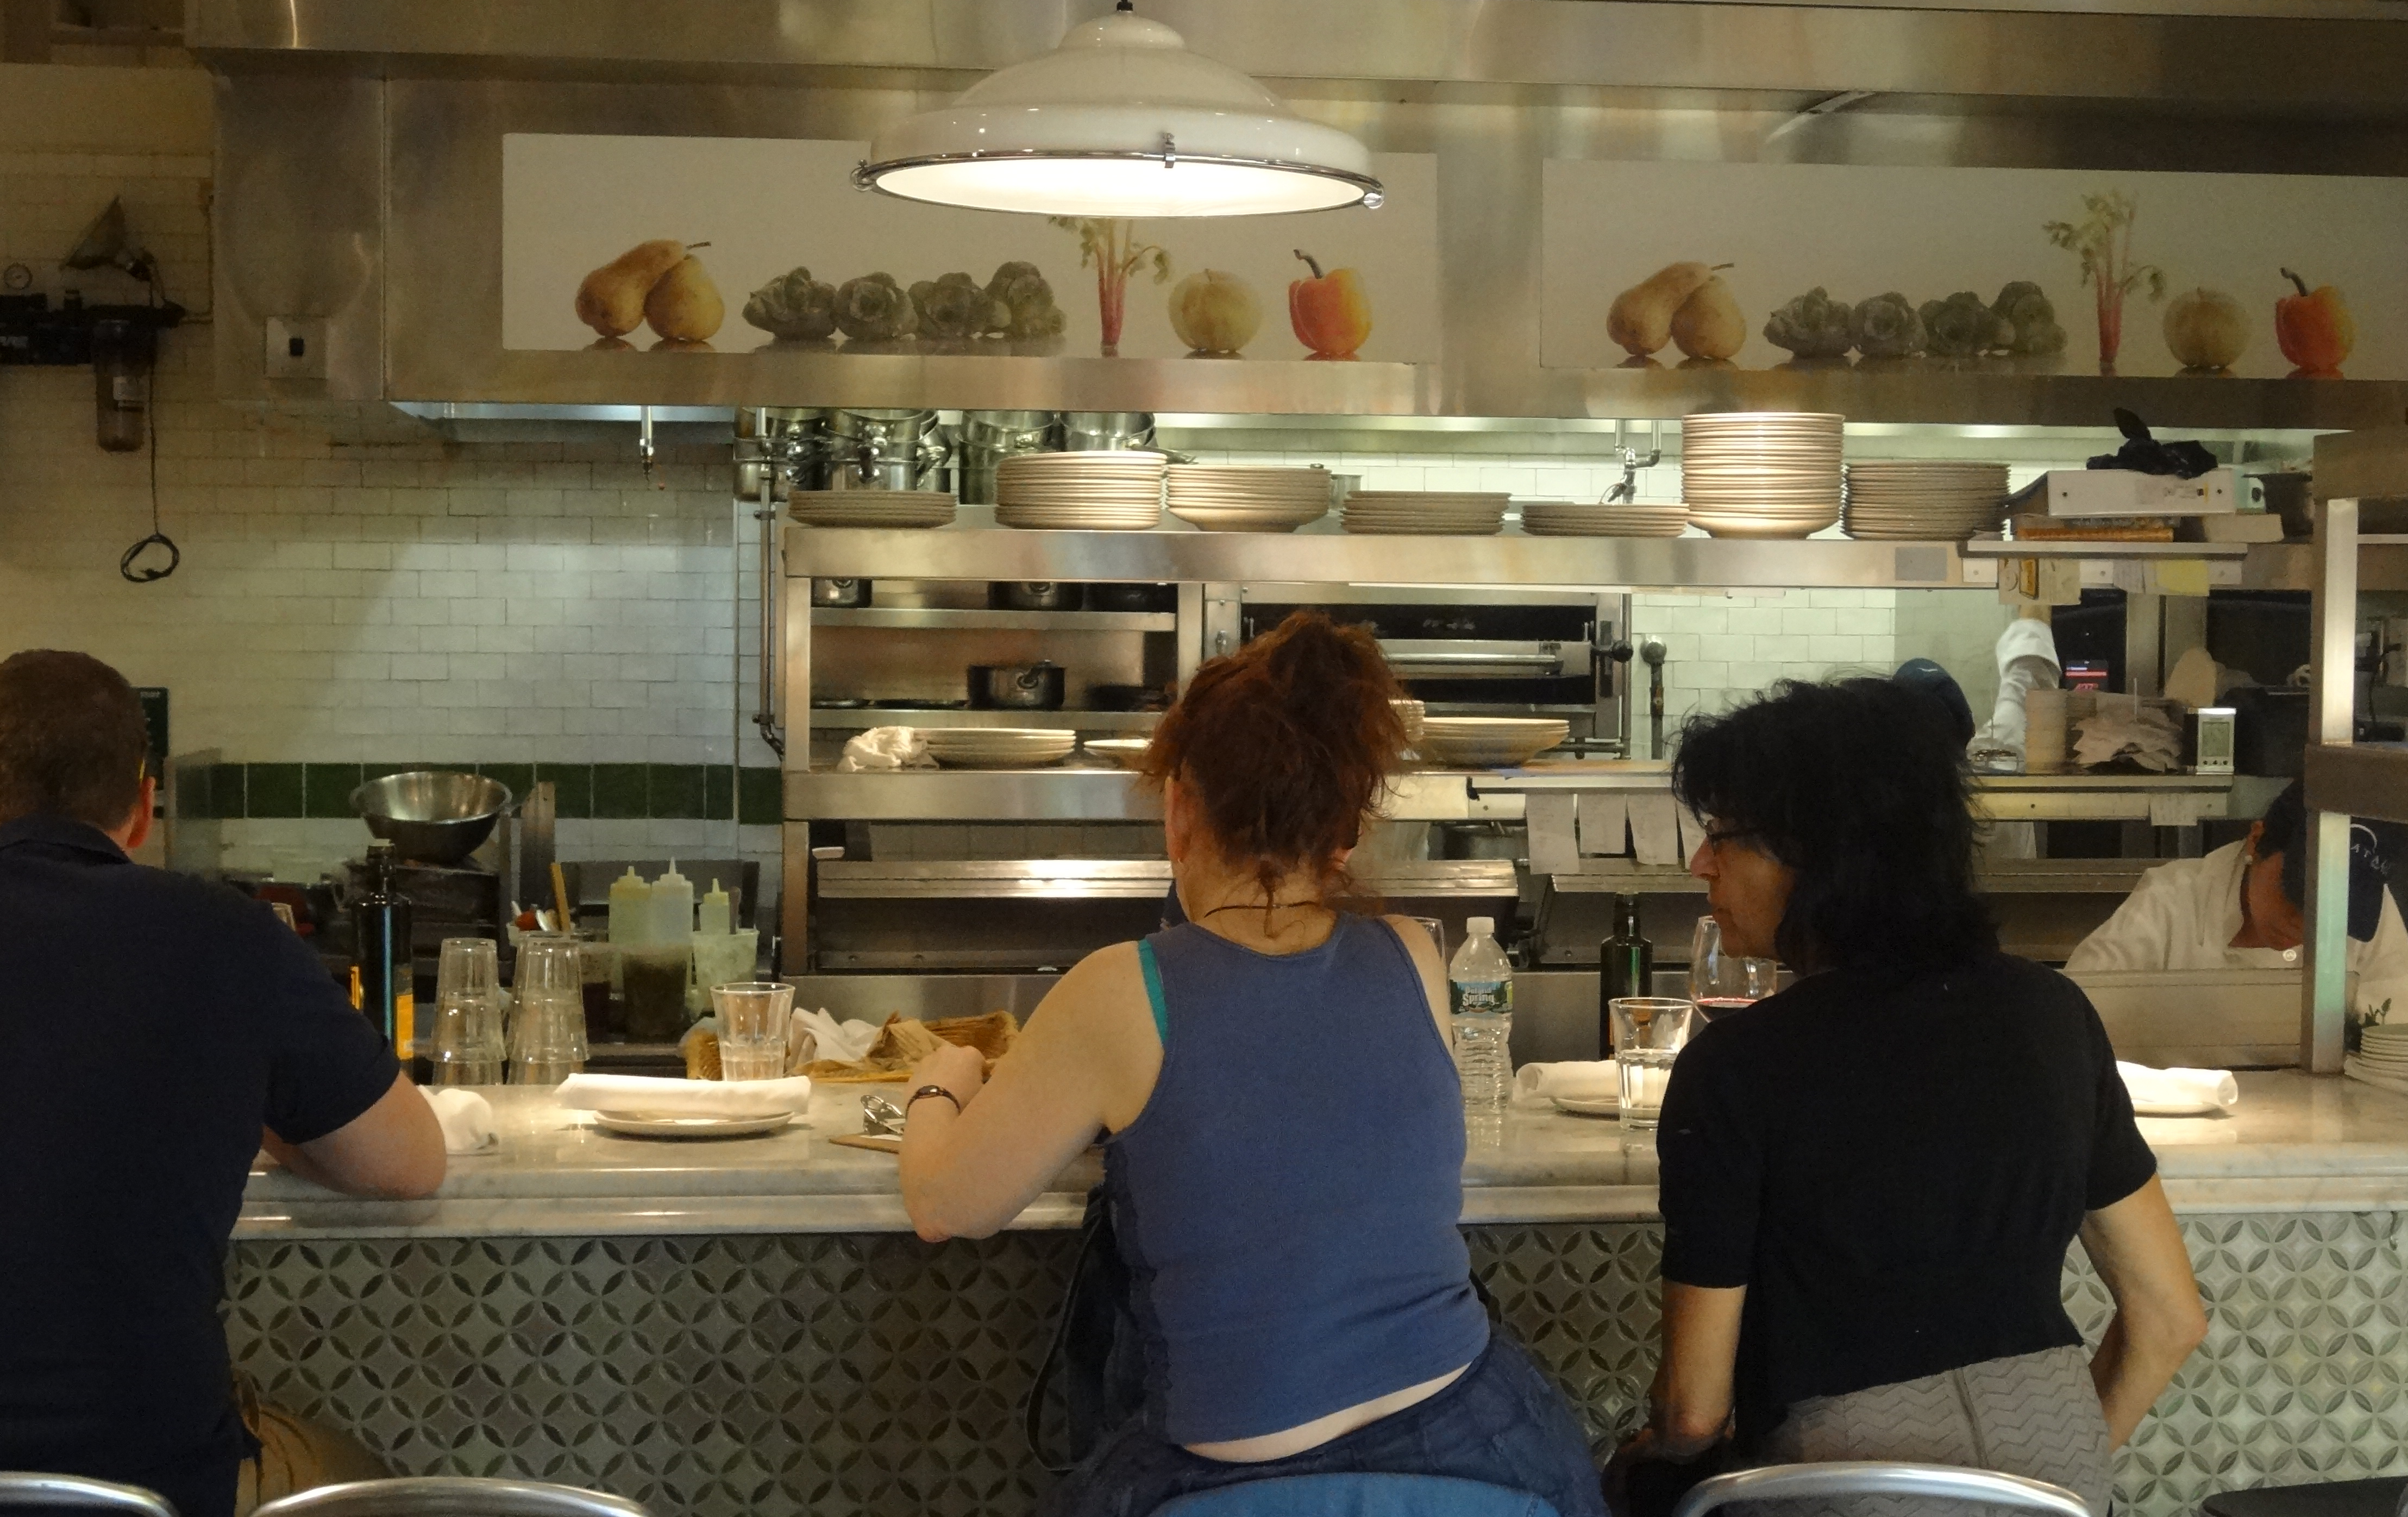 Road trip eataly batterypark tv we inform for 22 river terrace apartments